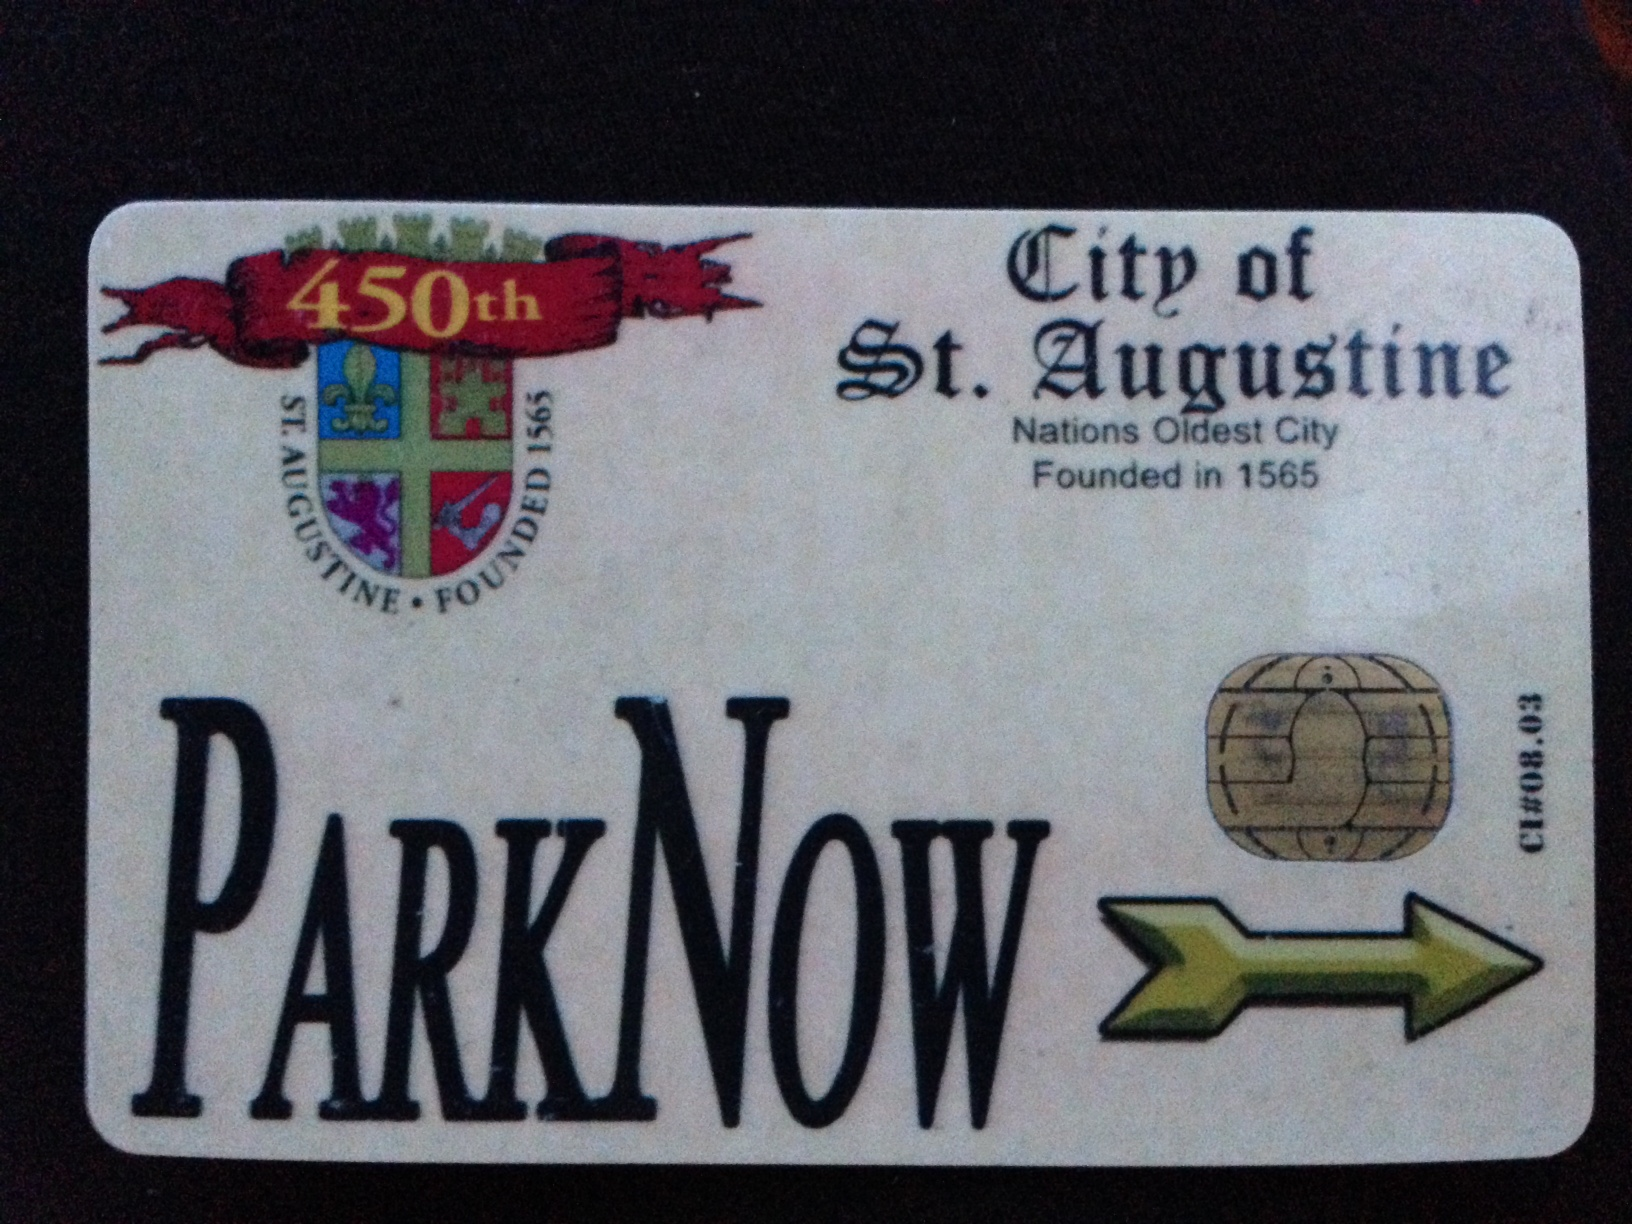 Whether you live in the Nations Oldest City, visit us frequently OR plan on spending your vacation in St Augustine, FL~ the PARK NOW card is a MUST HAVE!  For $2.50 you receive a card that you can add $20, $30, $50 or $100 to which makes it a pre-paid card.  It does not expire and you can use it at all parking meters and the parking garage.